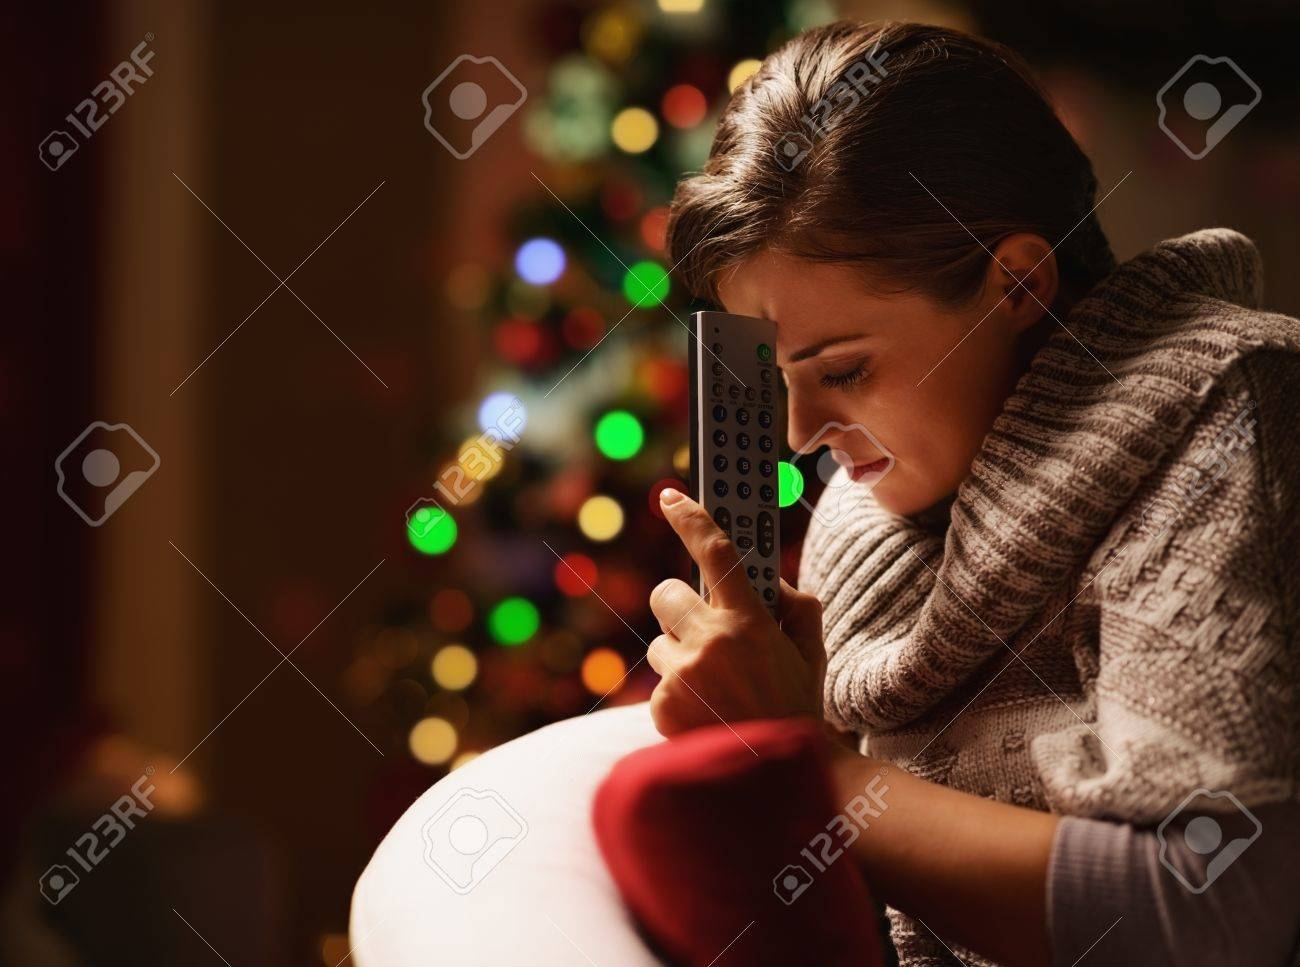 Frustrated young woman with tv remote control in front of christmas tree Stock Photo - 21568200